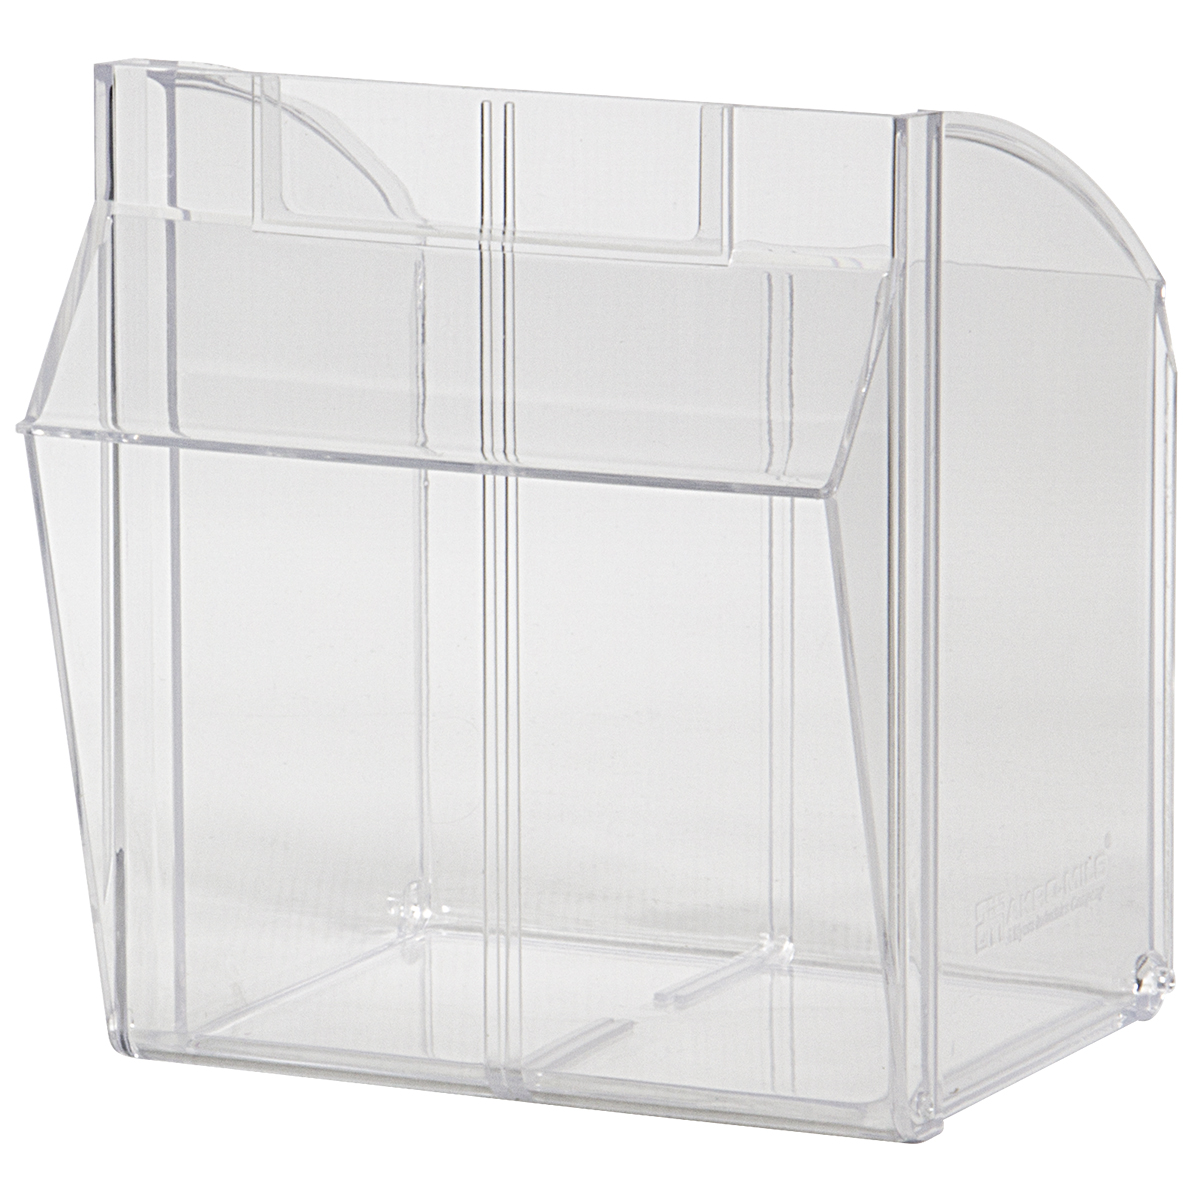 Replacement Bin for Model 06702, Clear (06702CUP).  This item sold in carton quantities of 1.